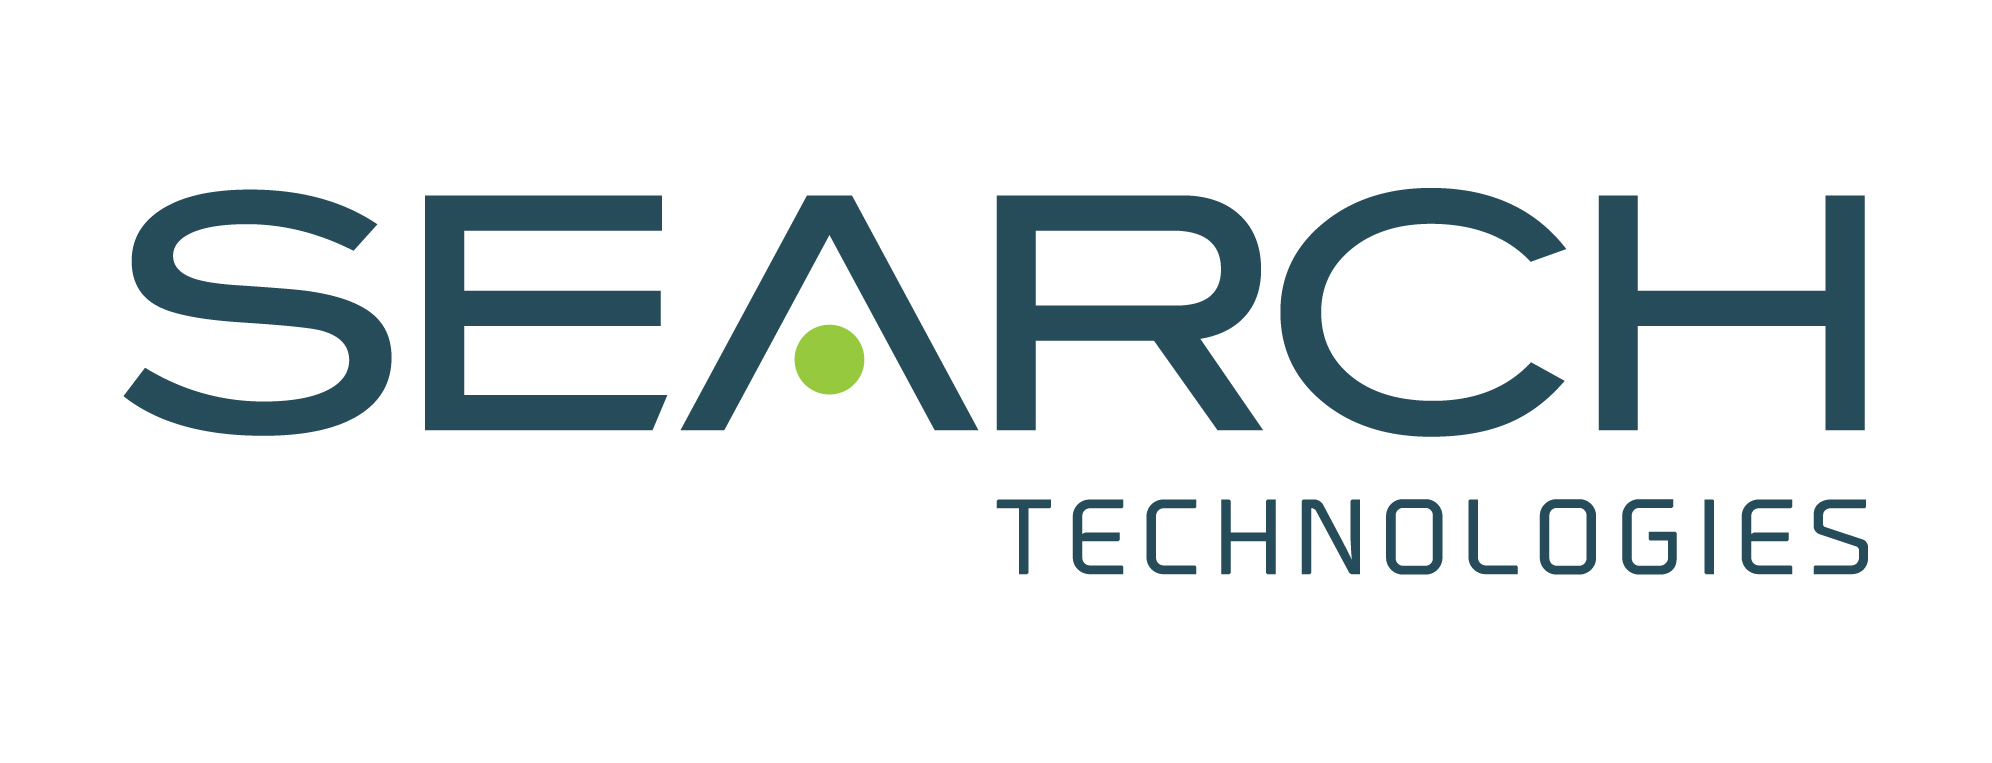 search technologies job board search technologies builds cool search enabled applications for our customers using the latest search and big data technologies we are the largest